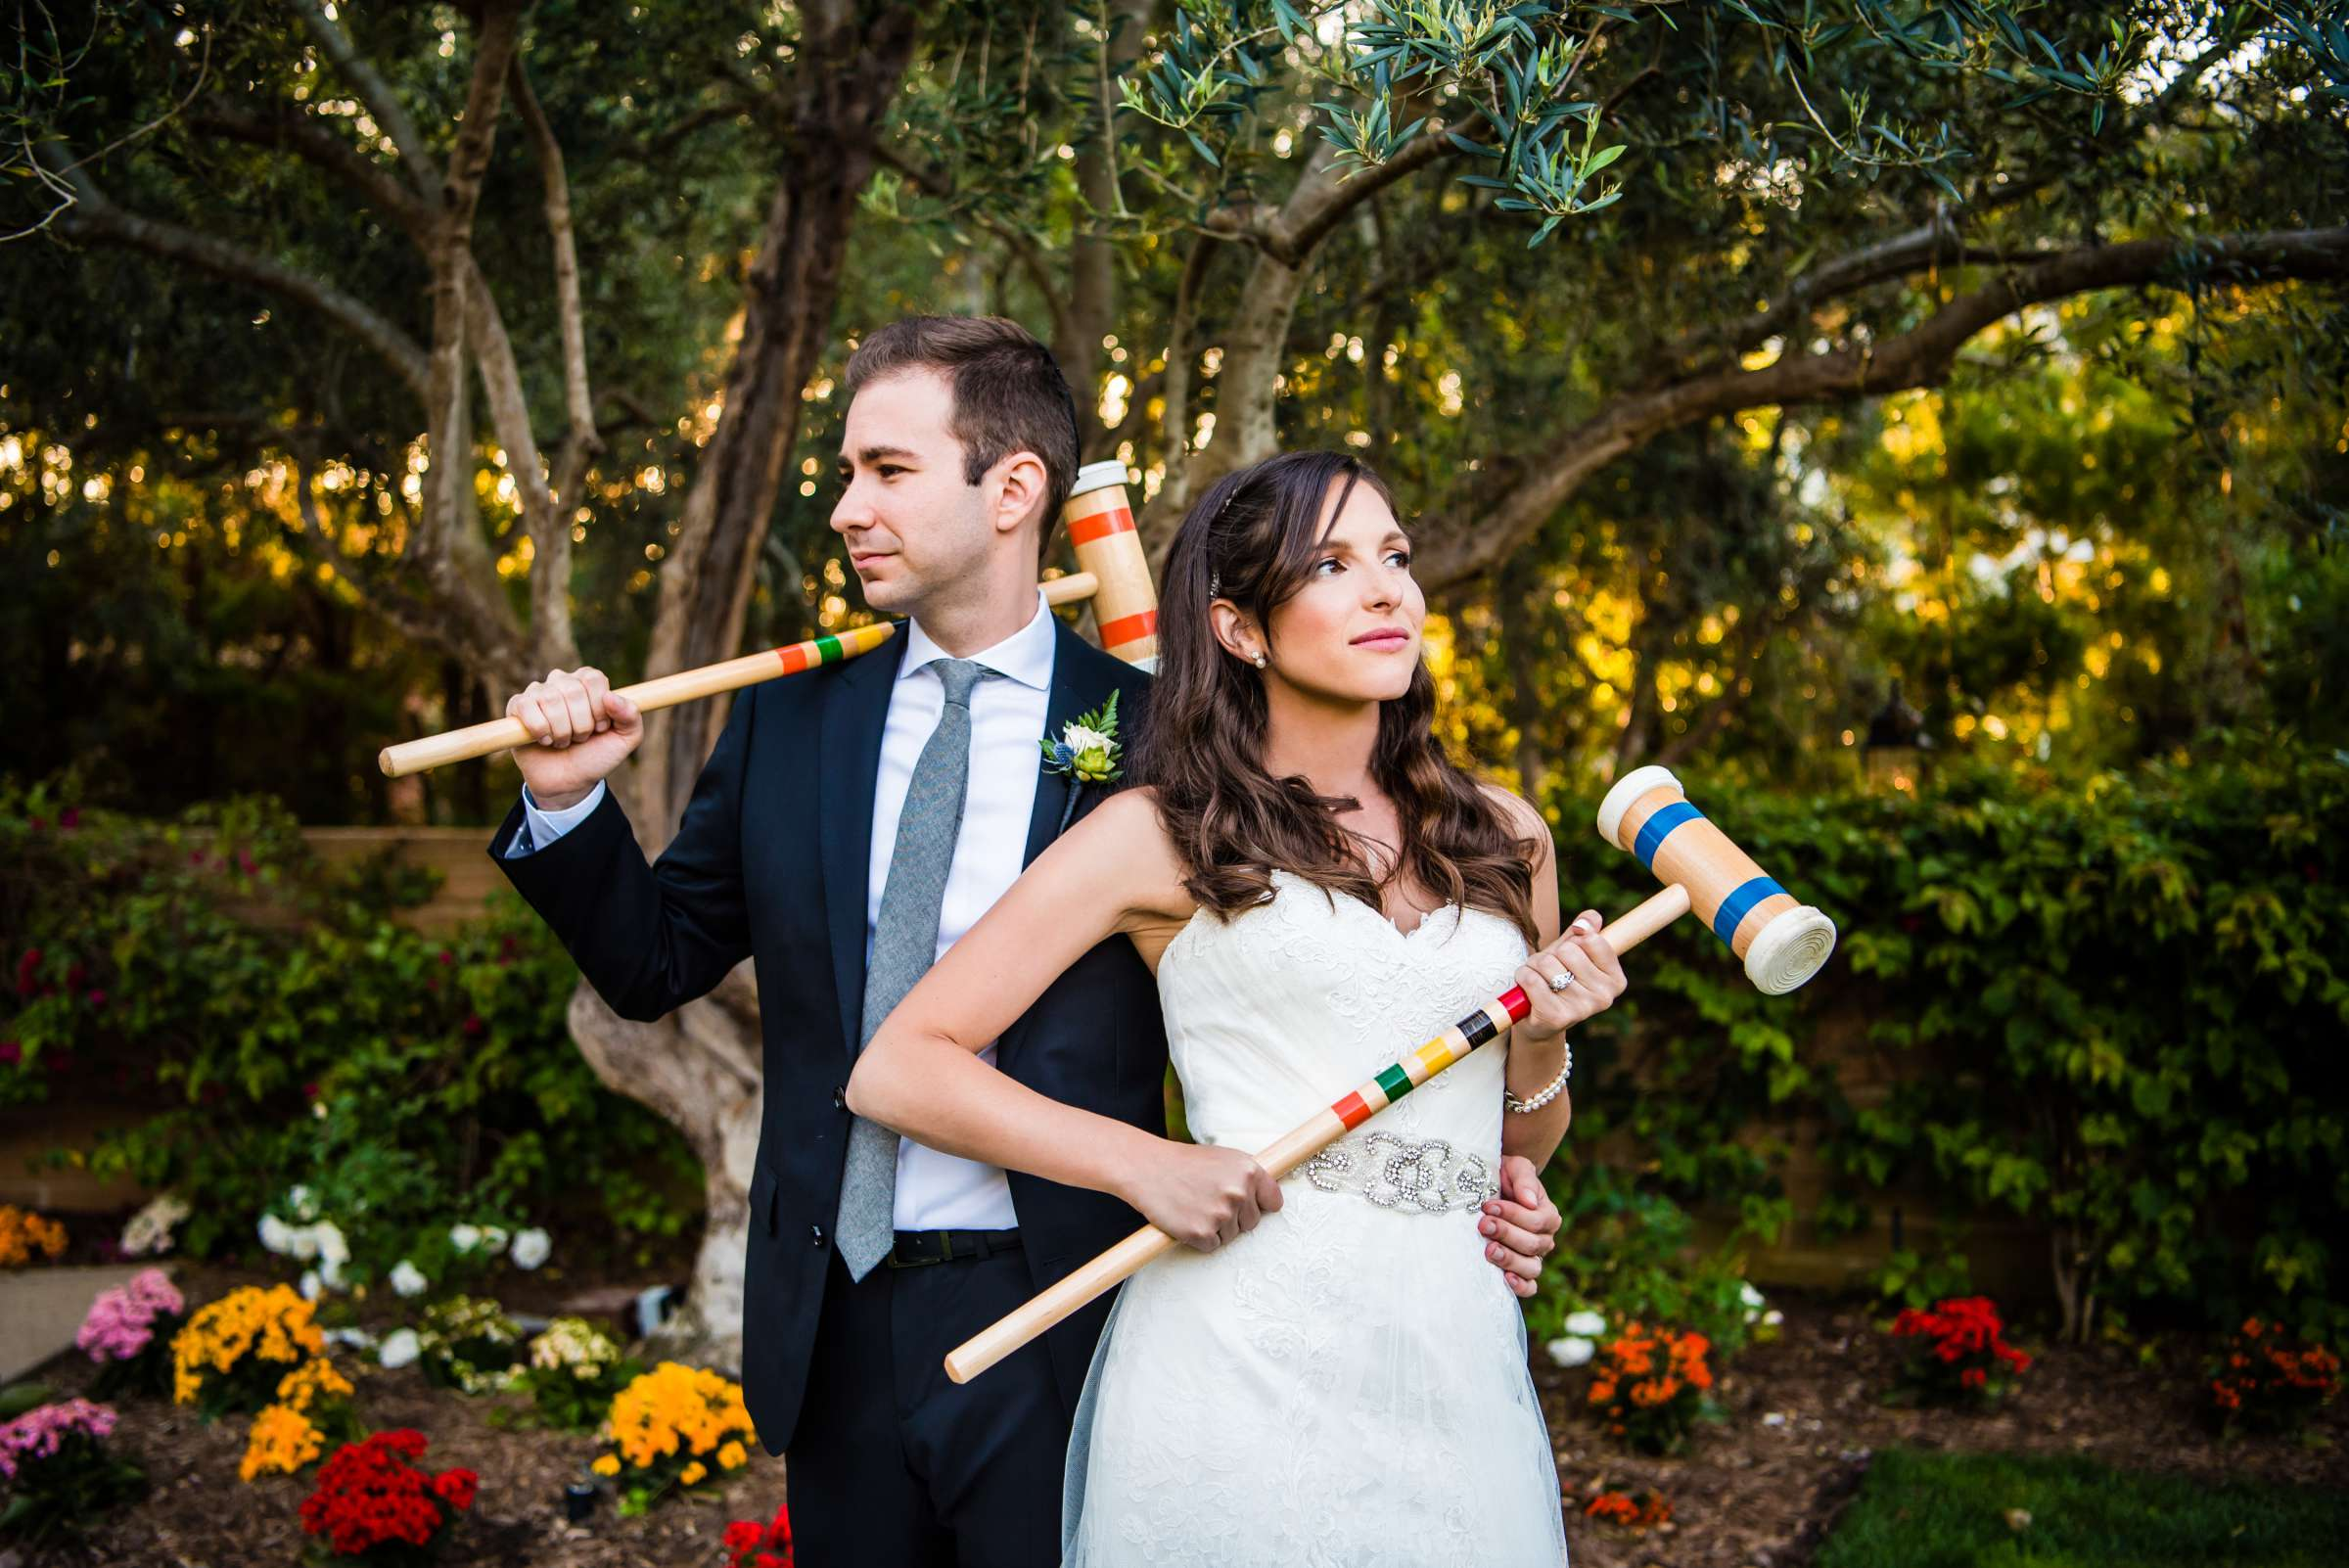 Estancia Wedding coordinated by Hannah Smith Events, Jaclyn and Brandon Wedding Photo #45 by True Photography